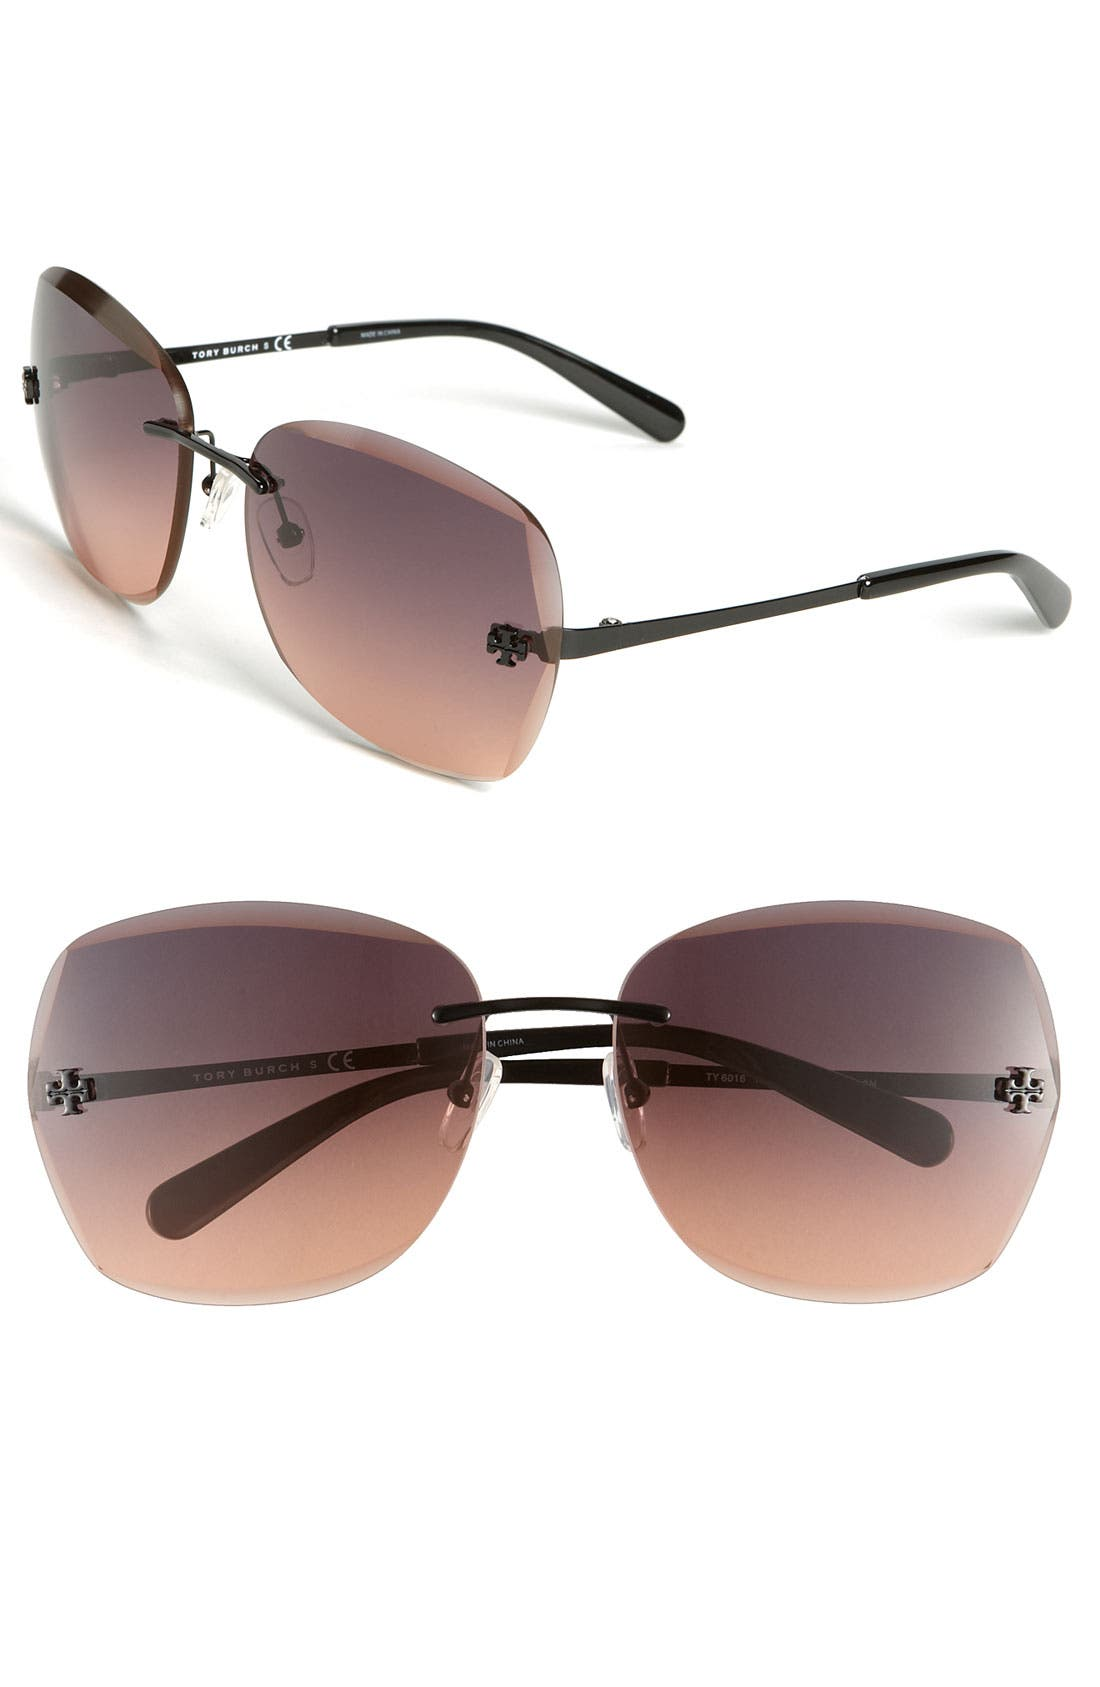 Main Image - Tory Burch Rimless Sunglasses